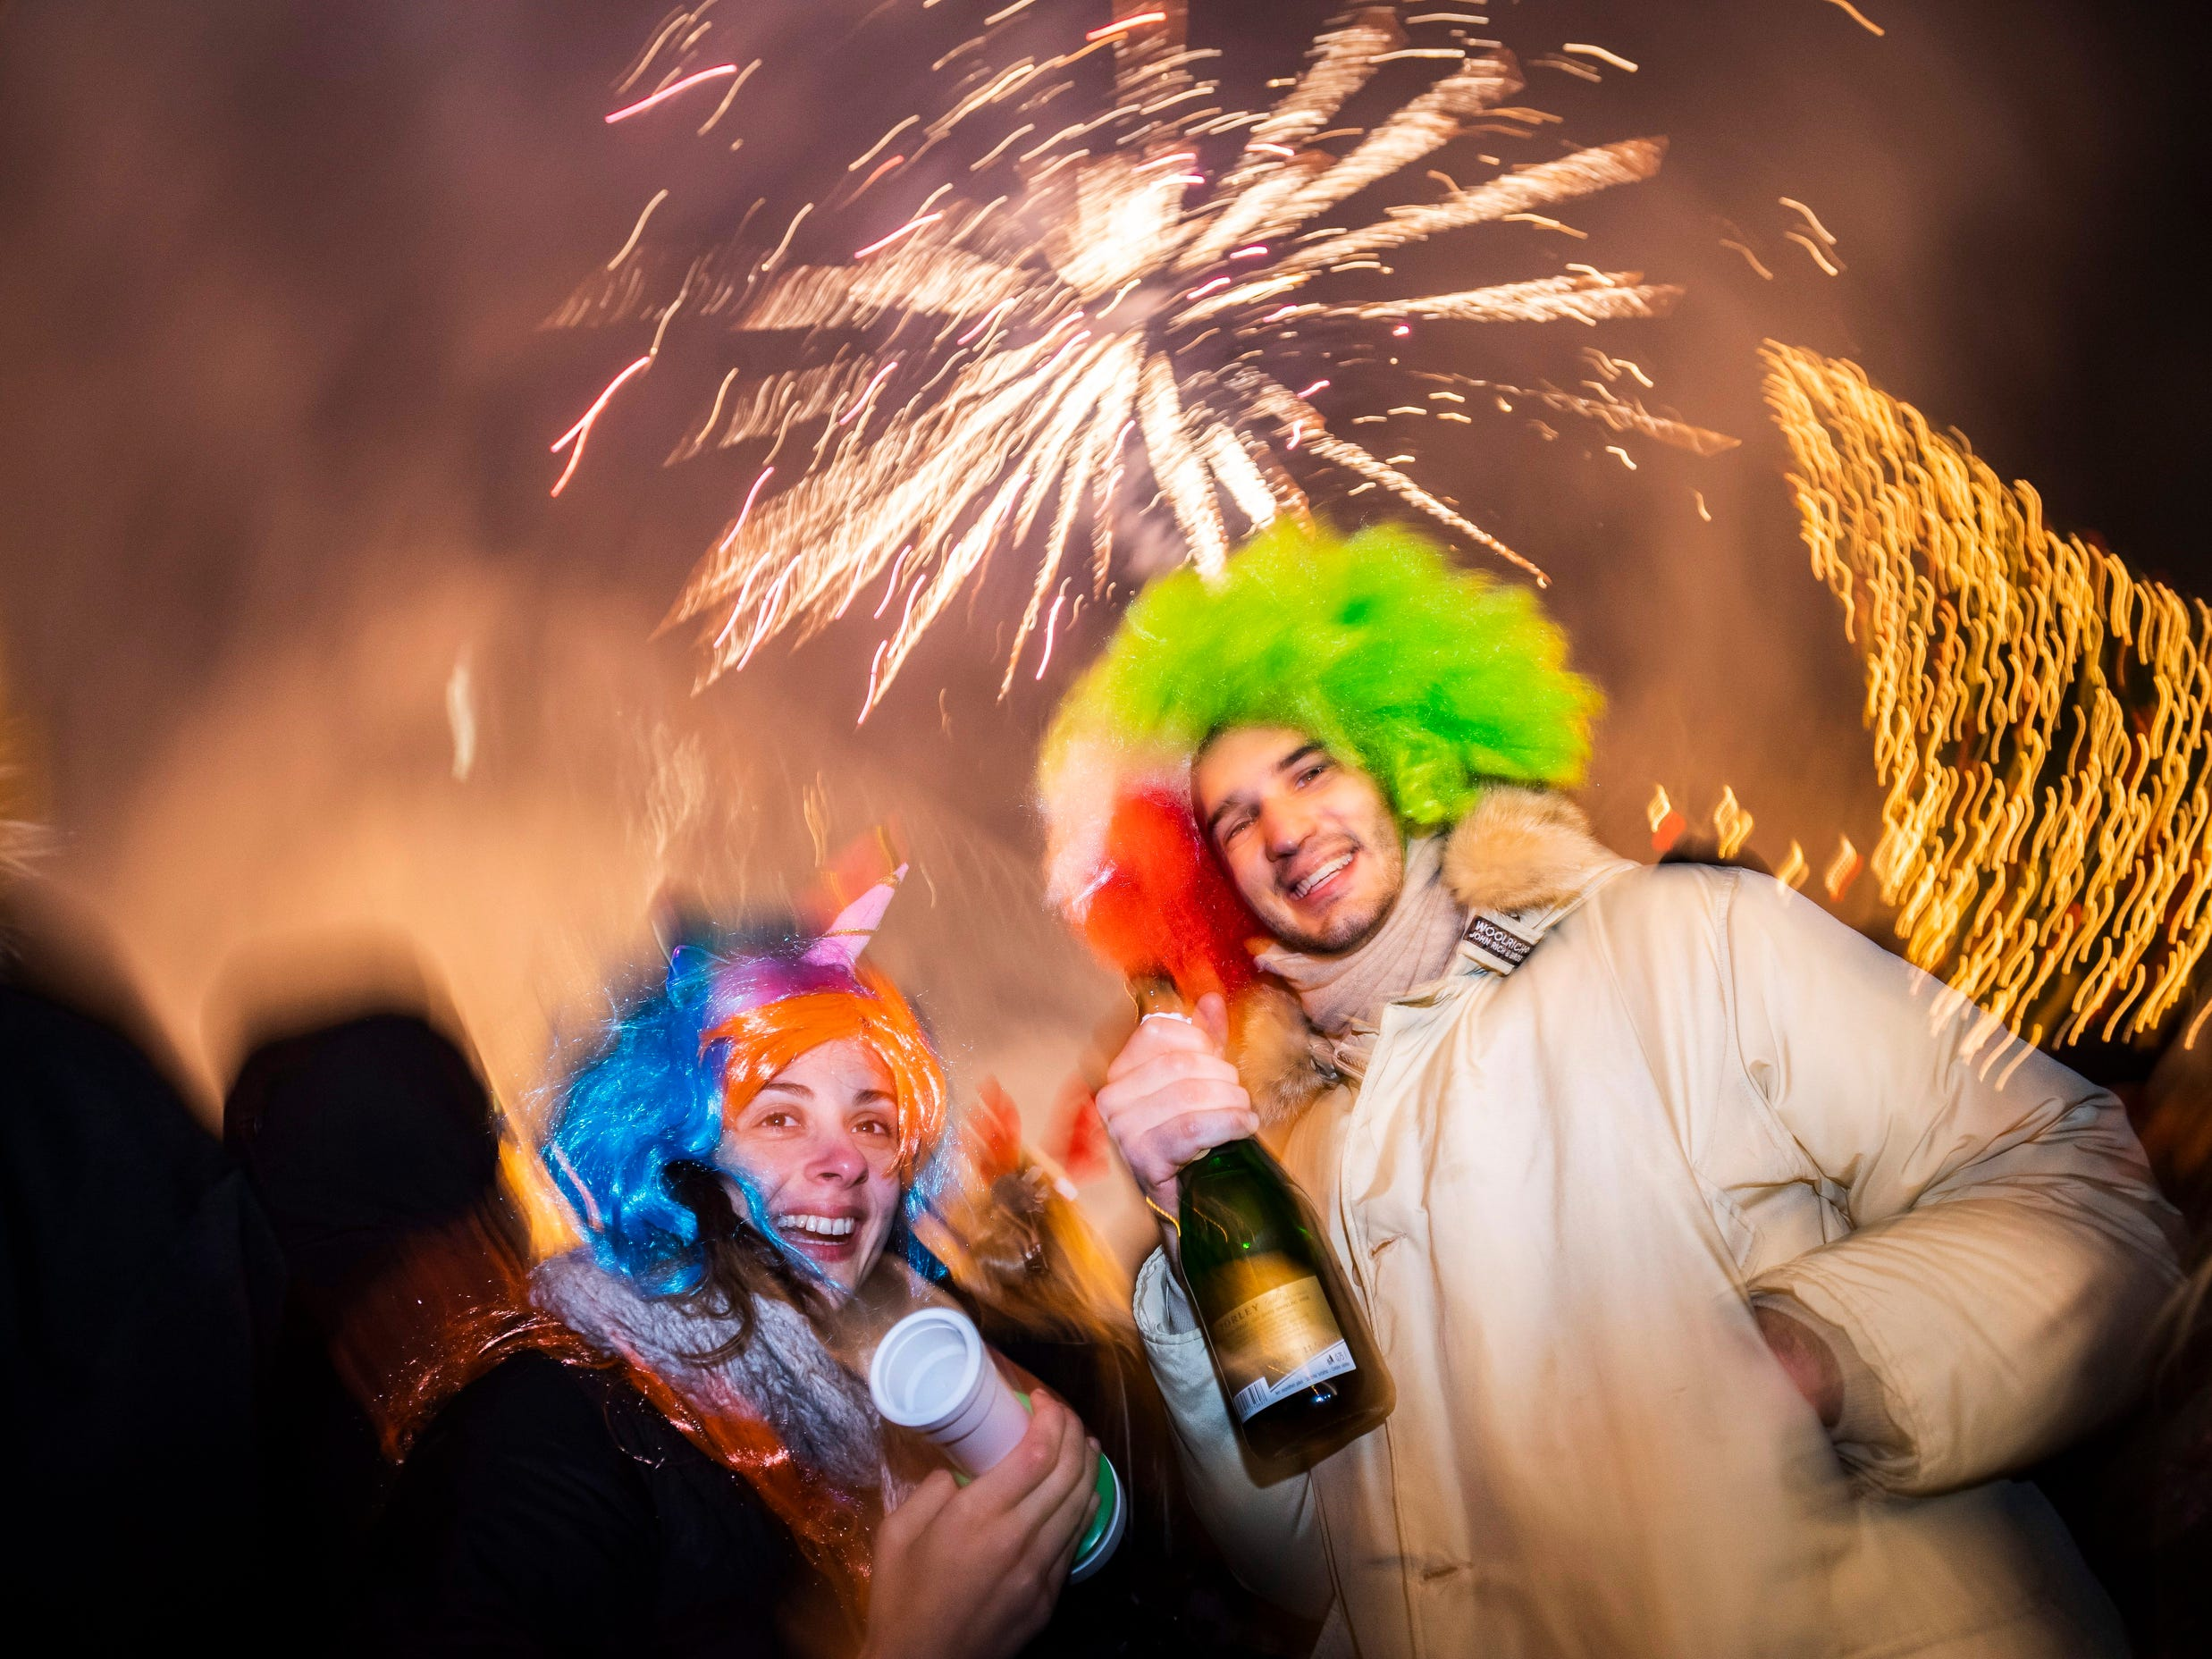 Revellers prepare to welcome the arrival of 2019 during the New Year's Eve celebration on Vorosmarty square, Budapest, Hungary.